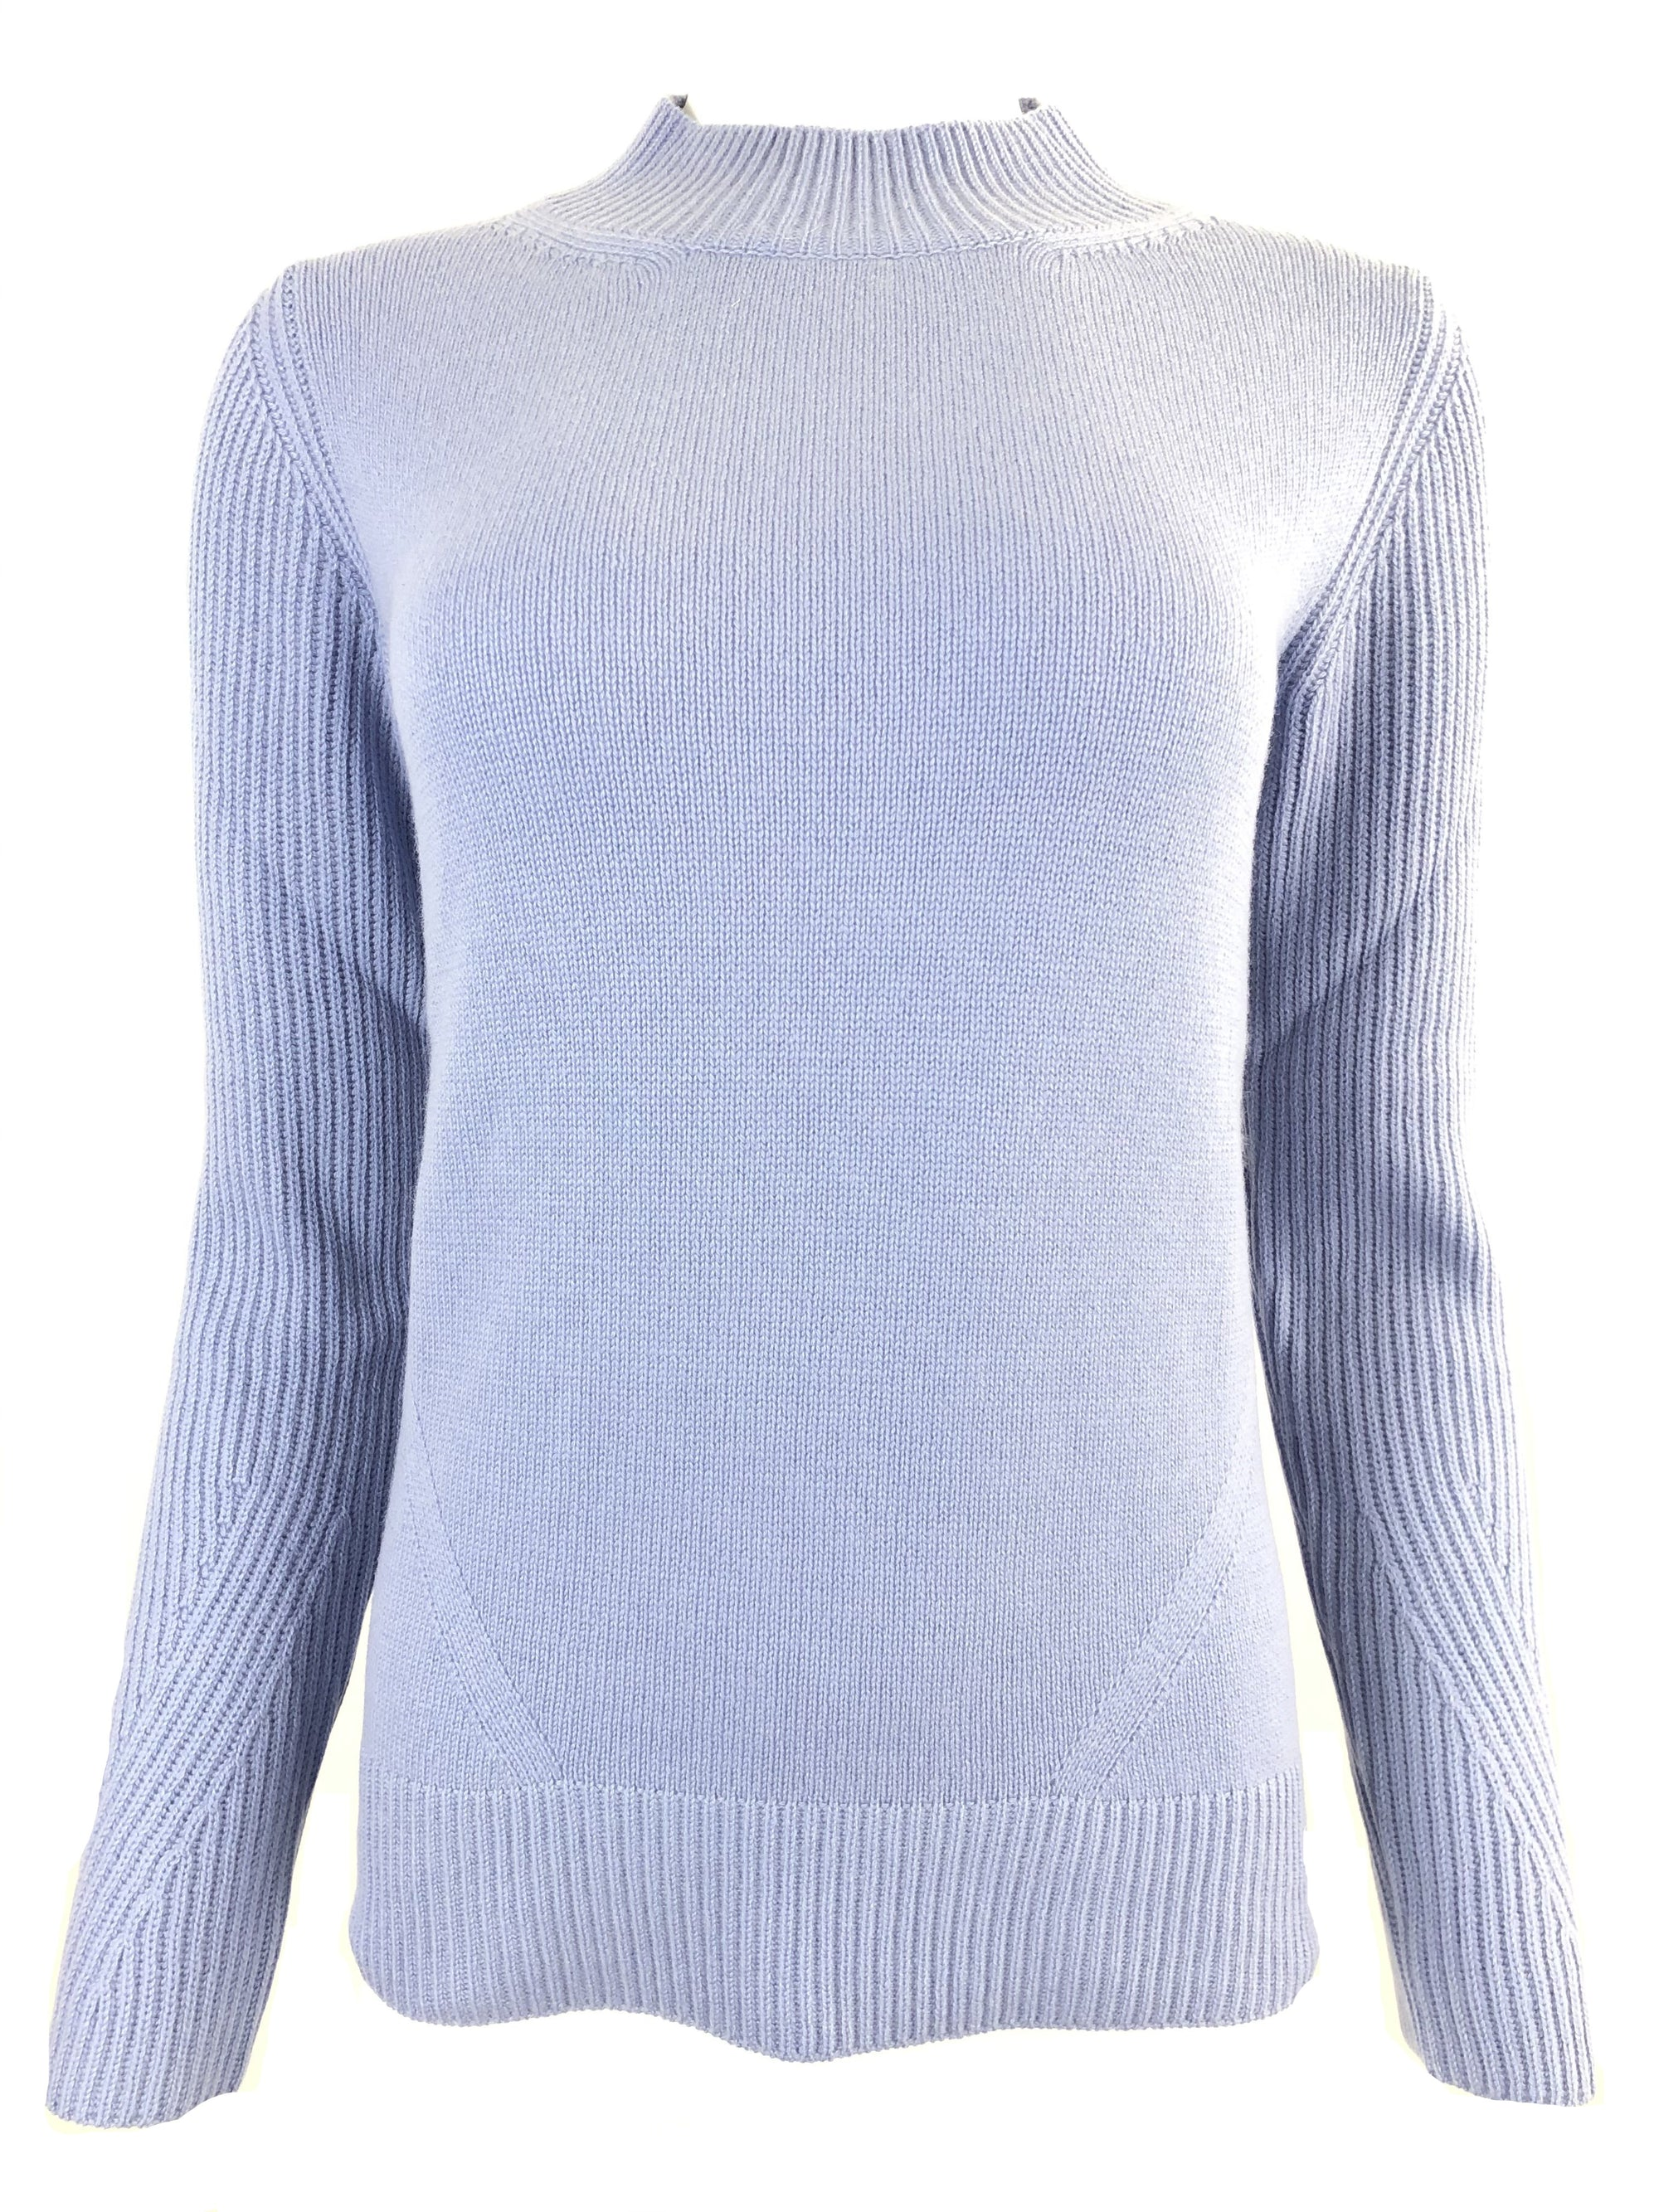 BRUNO MANETTI MOCK NECK CASHMERE WOMEN'S TUNIC - LIGHT BLUE